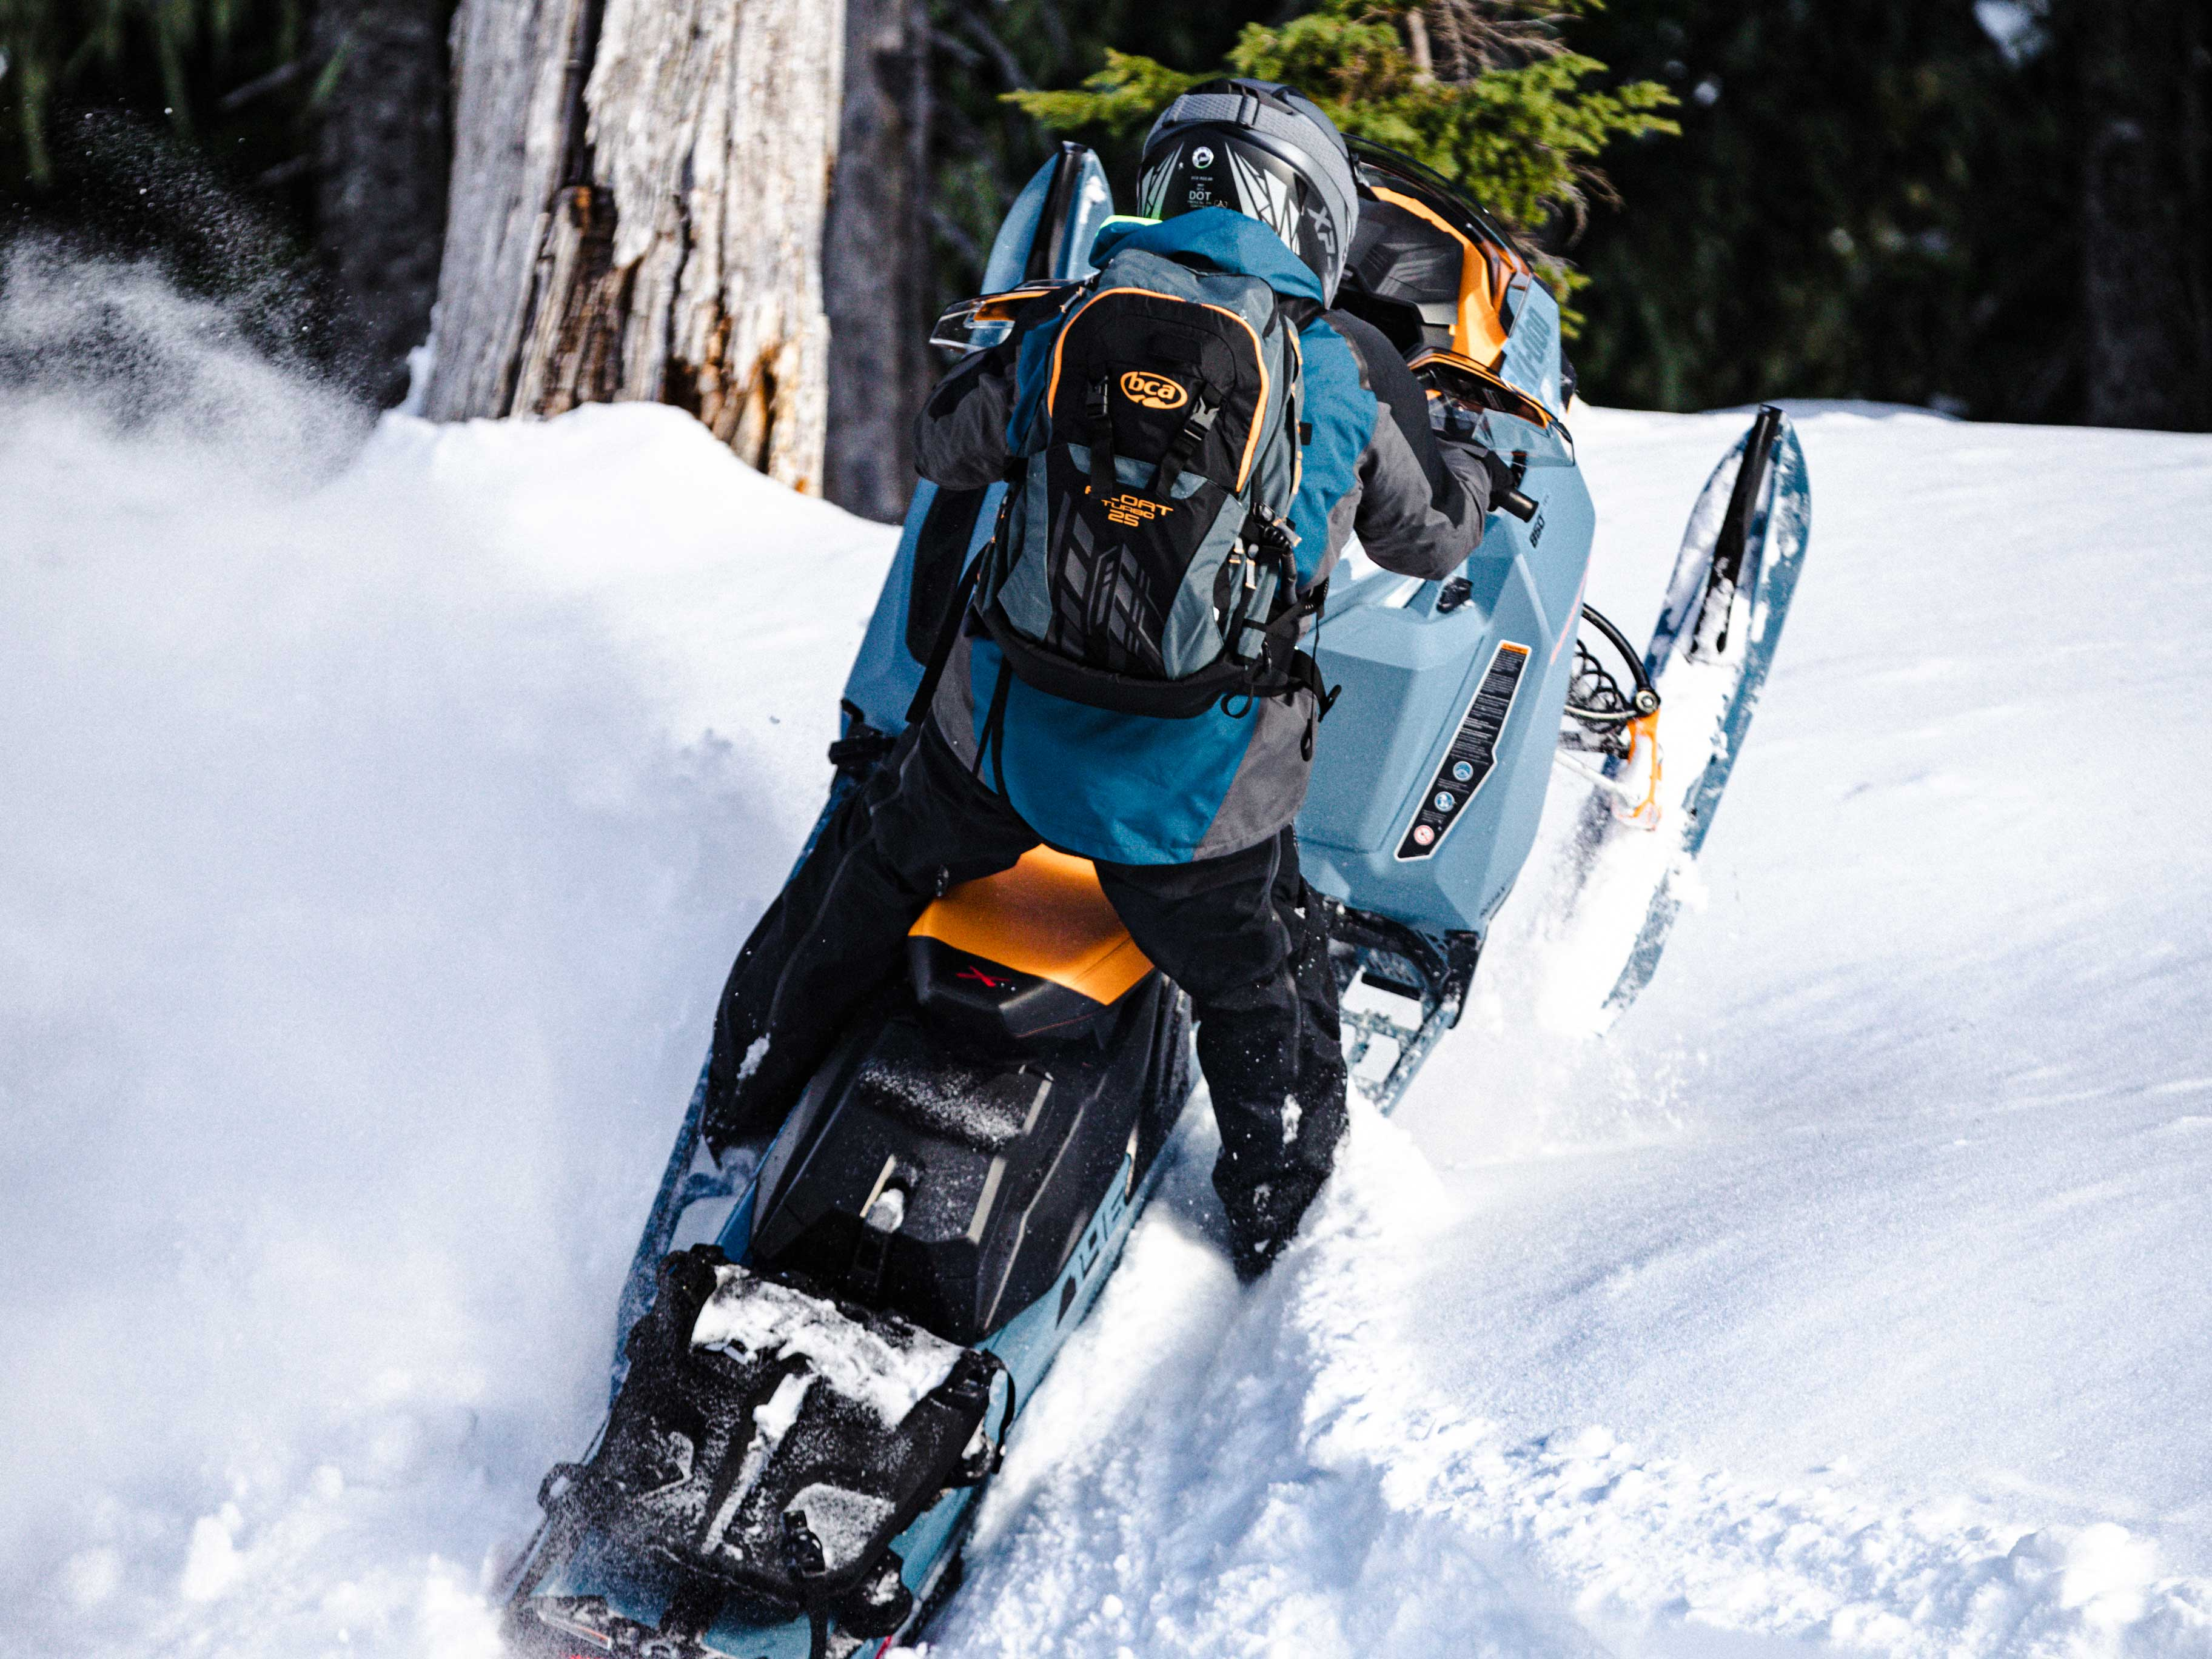 2022 Ski-Doo Backcountry and the REV Gen4 Platform